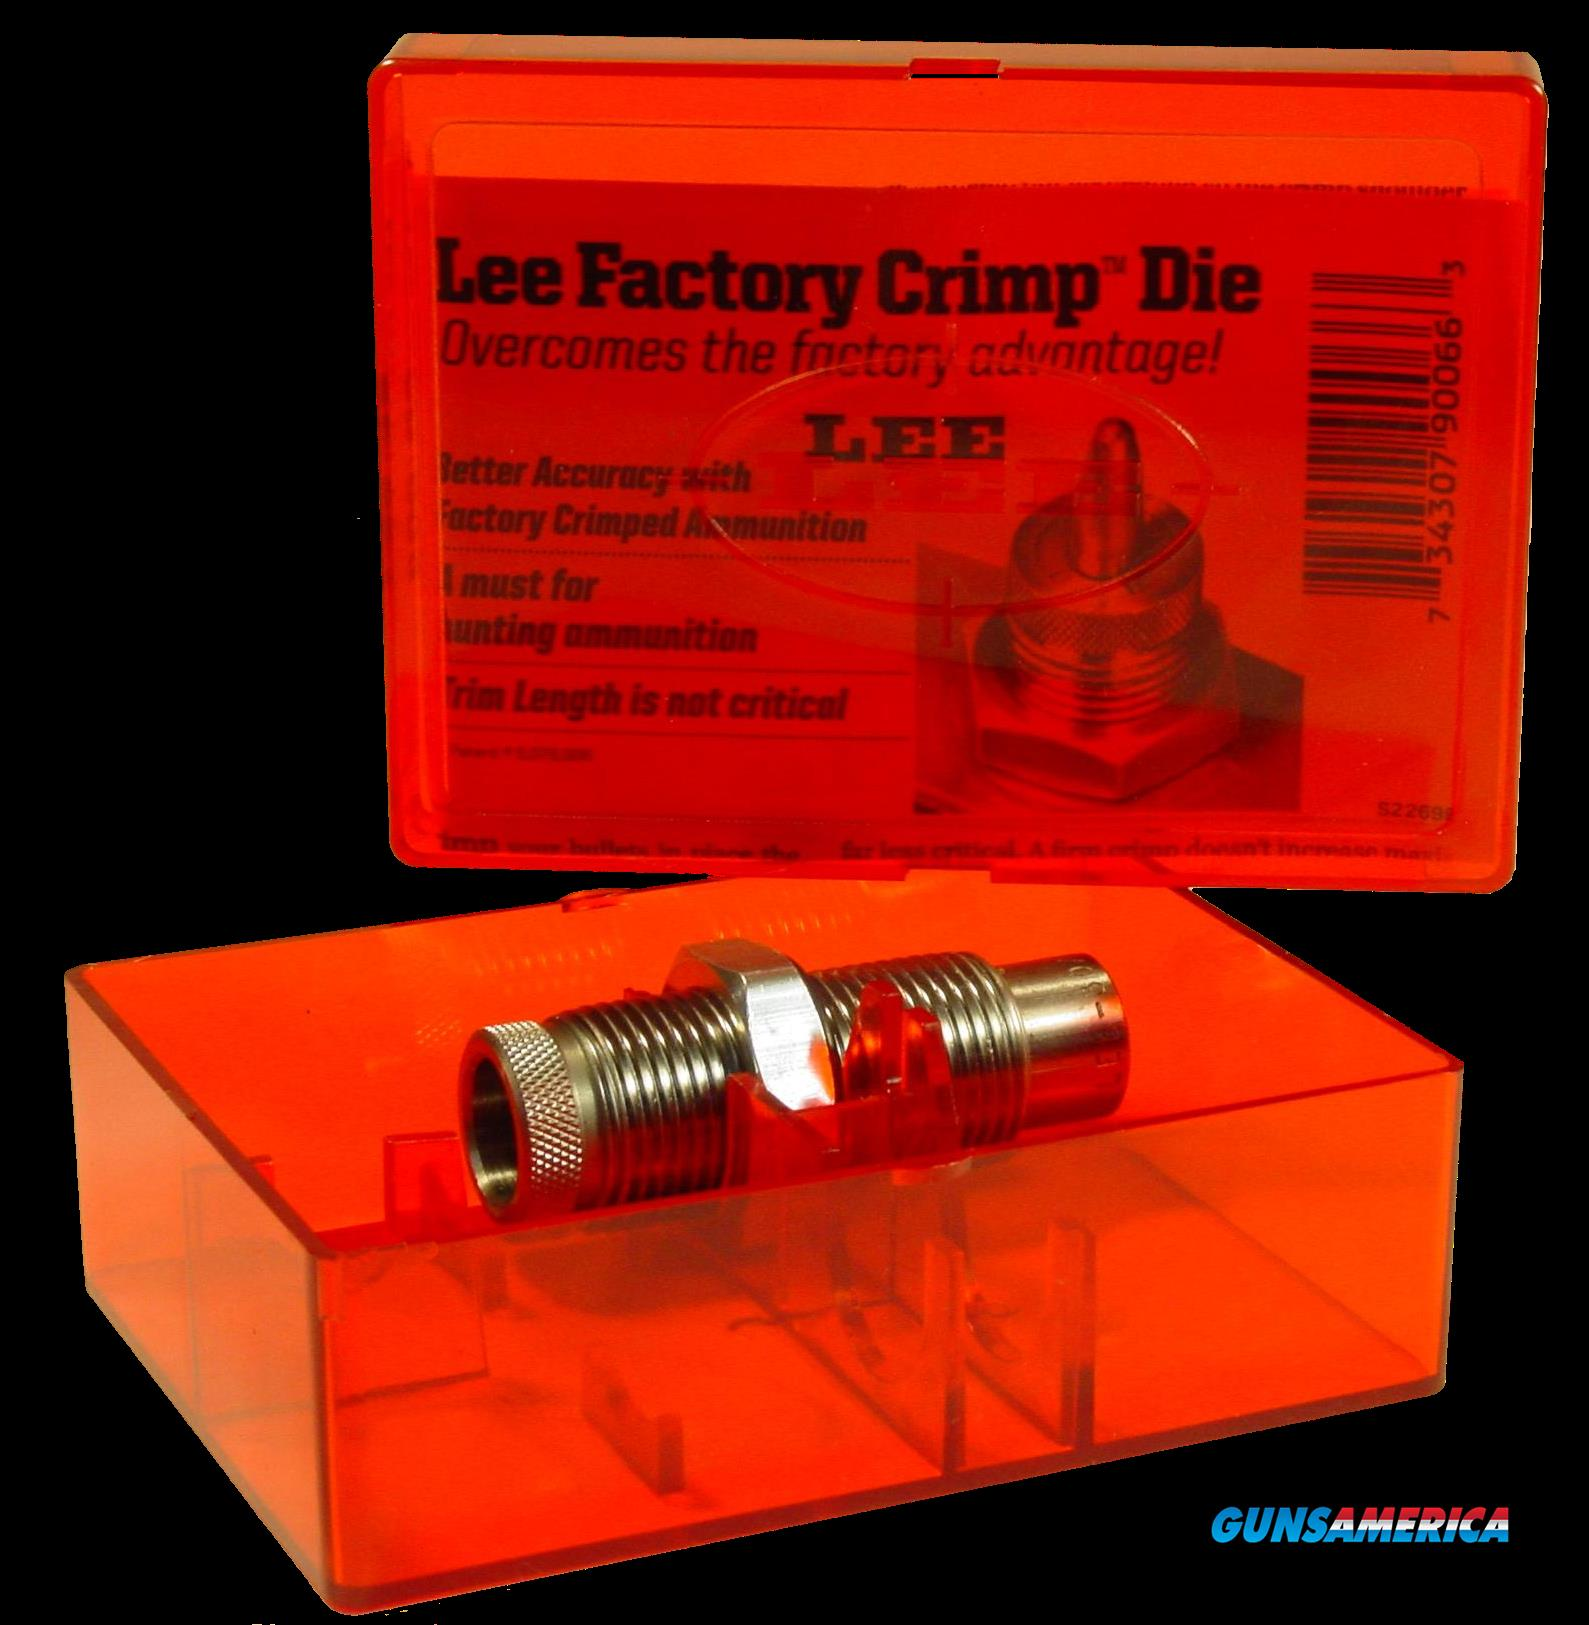 Lee Factory, Lee 90824 Fact Crimp Die 30-06  Guns > Pistols > 1911 Pistol Copies (non-Colt)